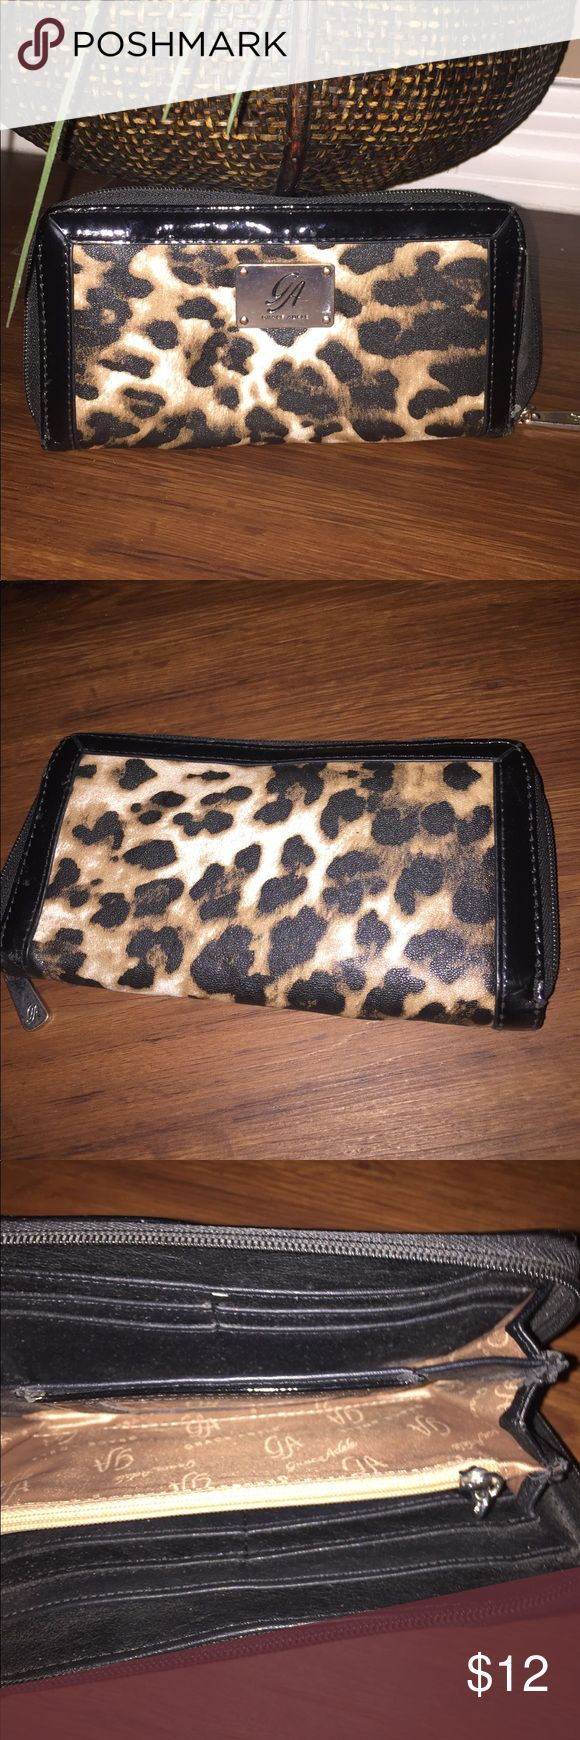 GRACE ADELE Cheetah wallet holder Adele Grace wallet - used minor scuffles- good condition 8 x 4 grace adele Bags Wallets